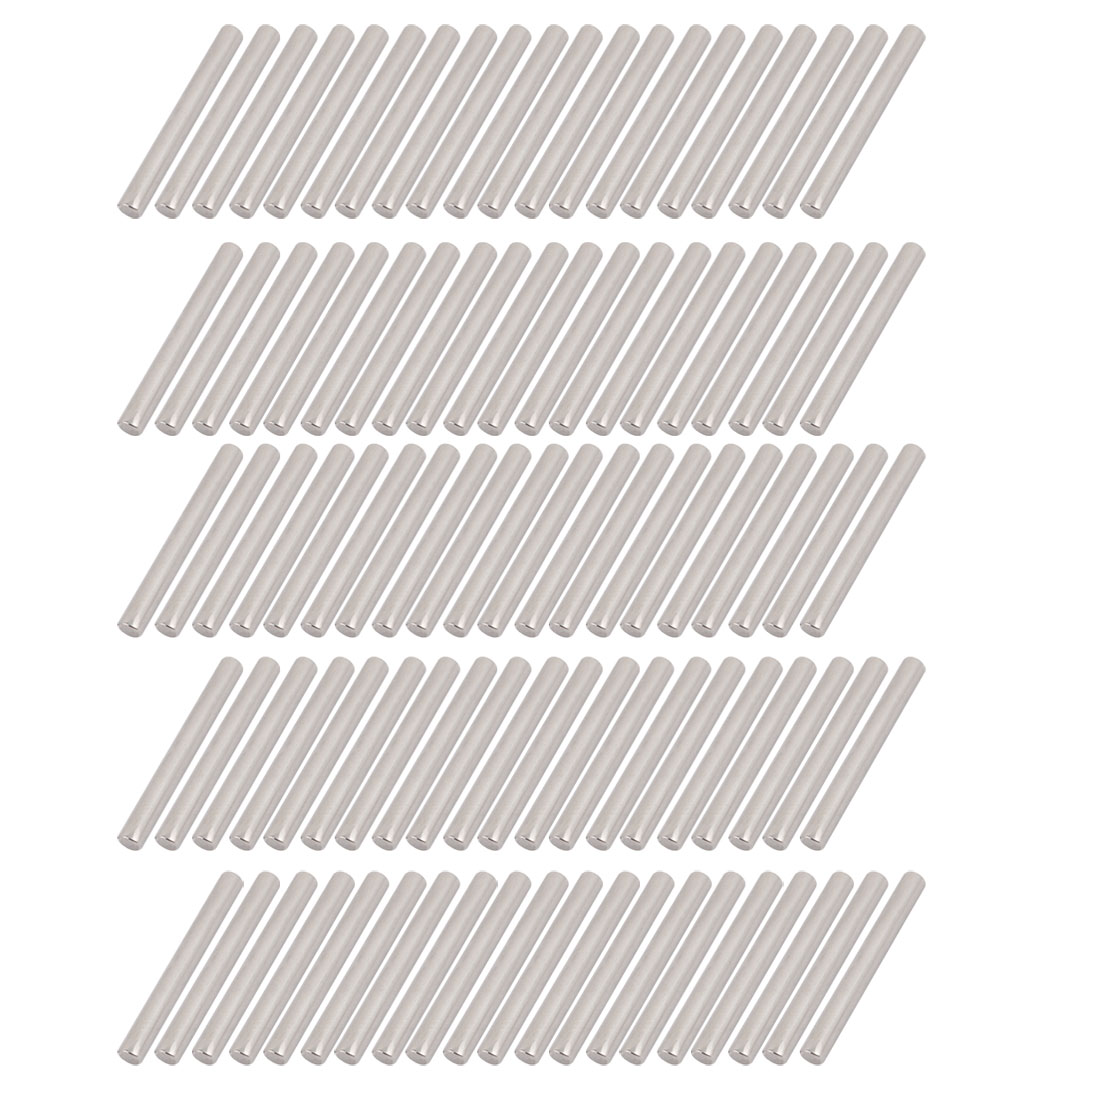 100Pcs Round Shaft Rods Axles Metal 3mm x 30mm for RC Car